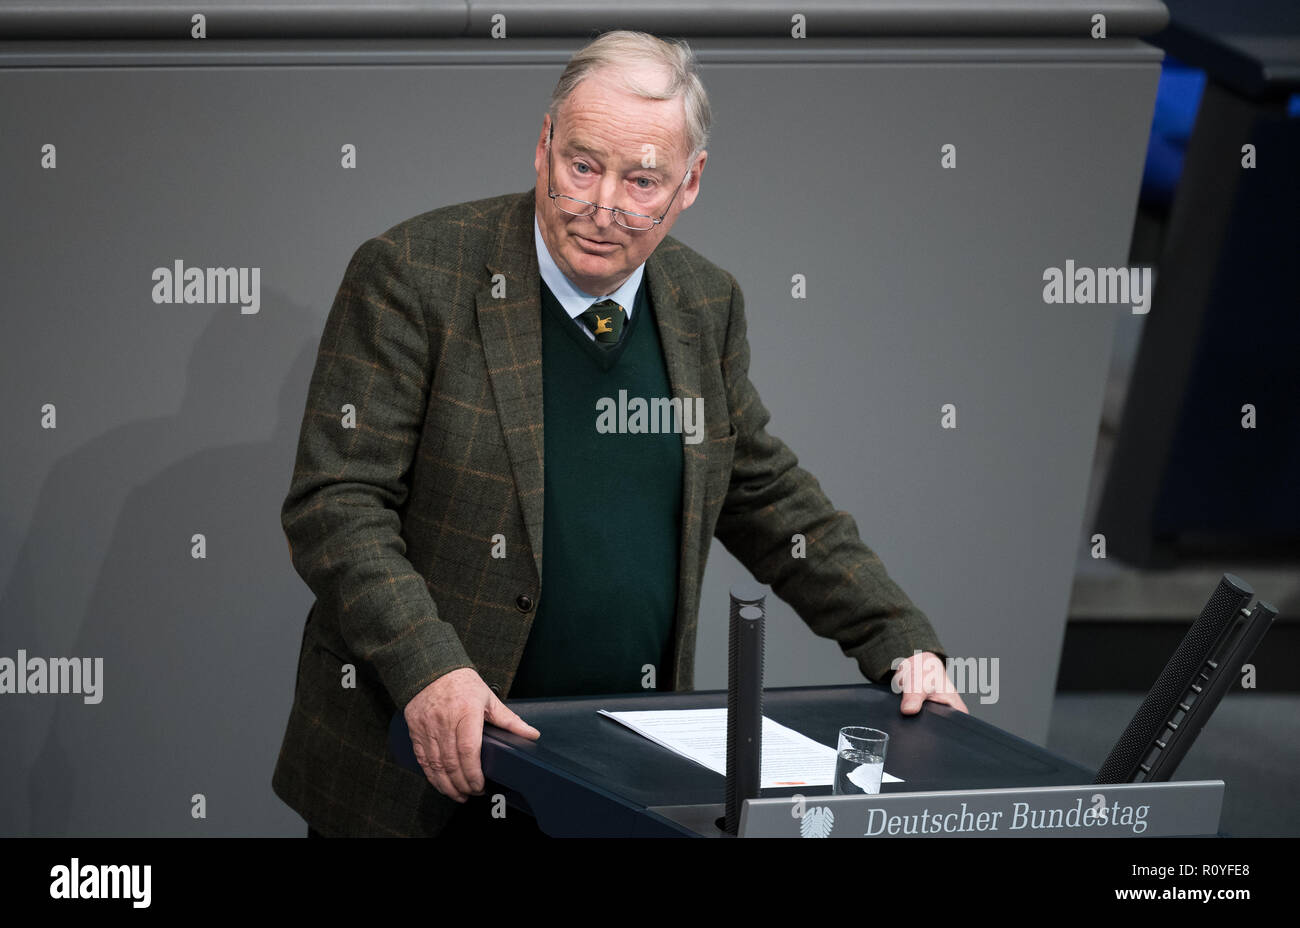 Berlin, Germany. 08th Nov, 2018. Alexander Gauland, Chairman of the AfD Parliamentary Group, speaks during the plenary session in the German Bundestag. Topics of the 61st session of the 19th legislative period include the pension package introduced by the Federal Government, additional safe countries of origin, tax relief for families, changes in asylum law, accelerated traffic planning and a current hour on the INF (Intermediate Range Nuclear Forces) nuclear disarmament treaty. Credit: Bernd von Jutrczenka/dpa/Alamy Live News Credit: Bernd von Jutrczenka/dpa/Alamy Live News - Stock Image